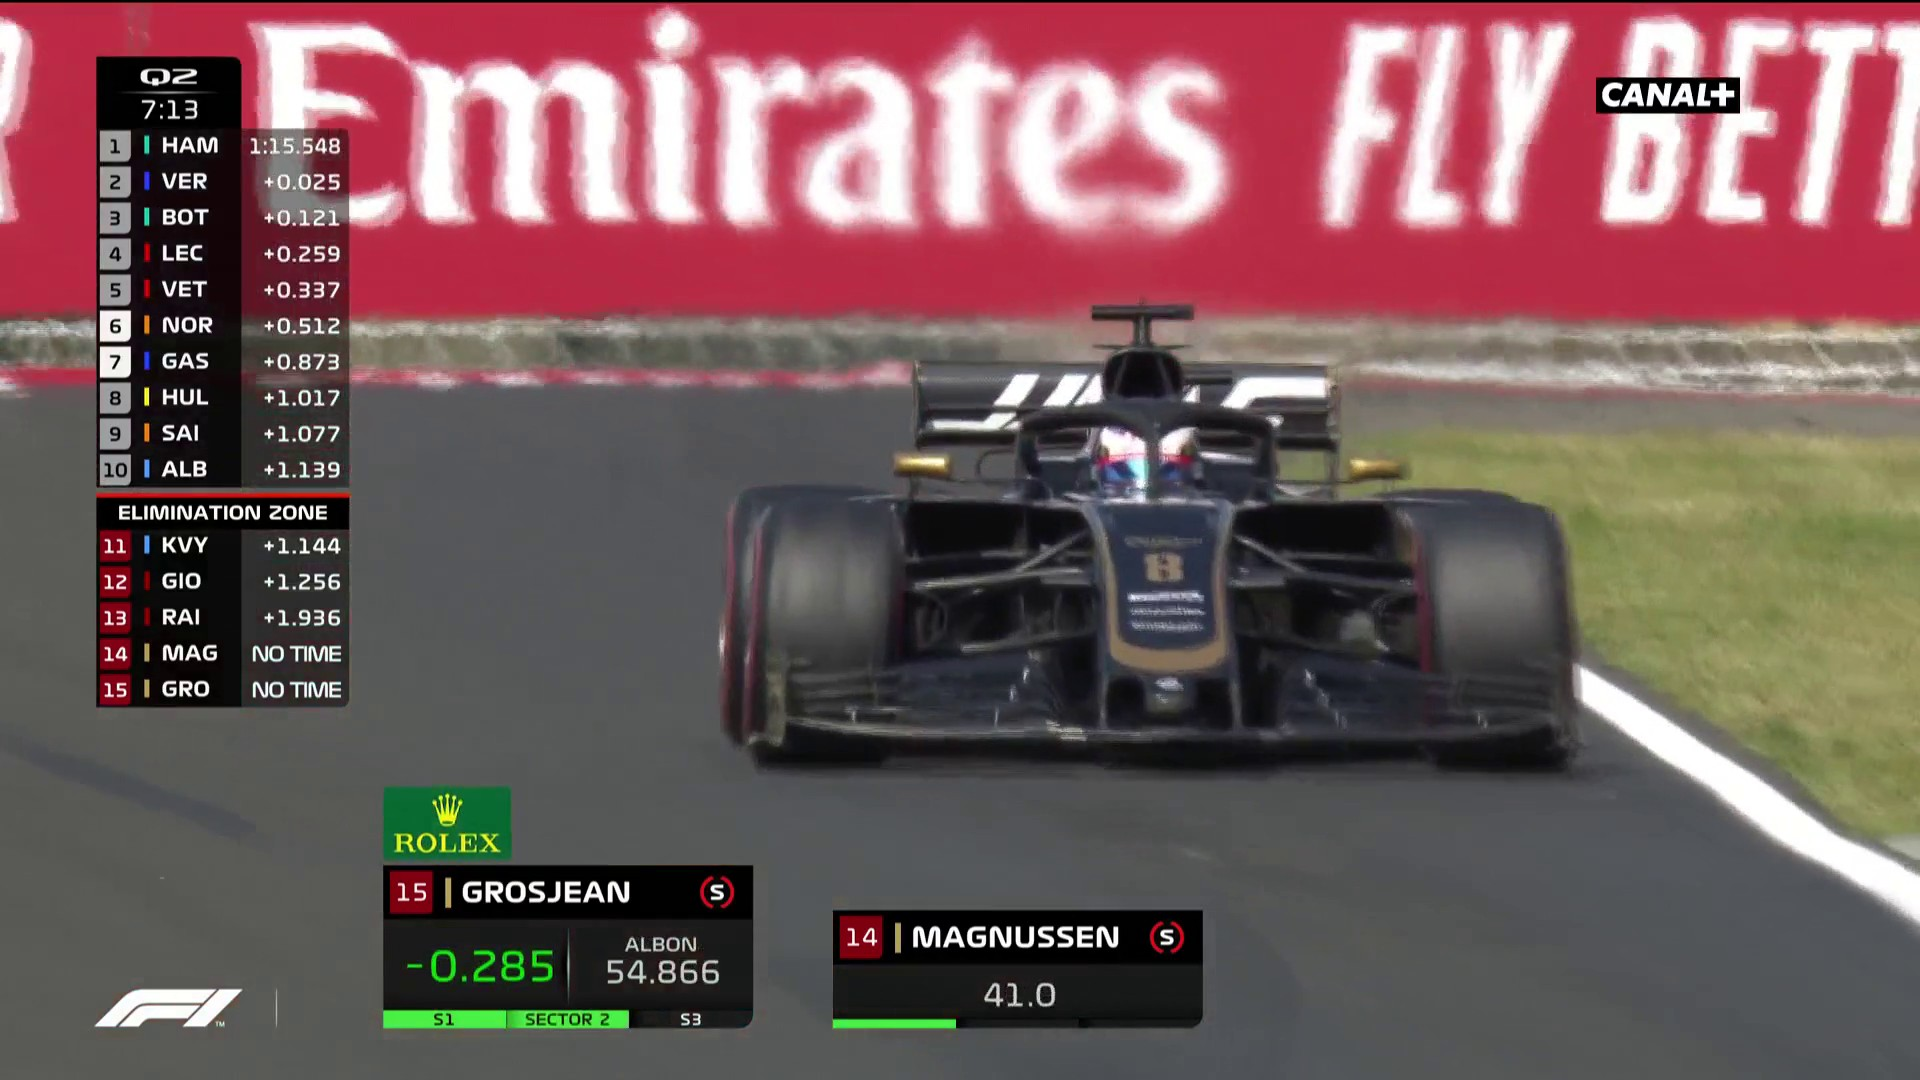 Belle performance de Grosjean en Q2